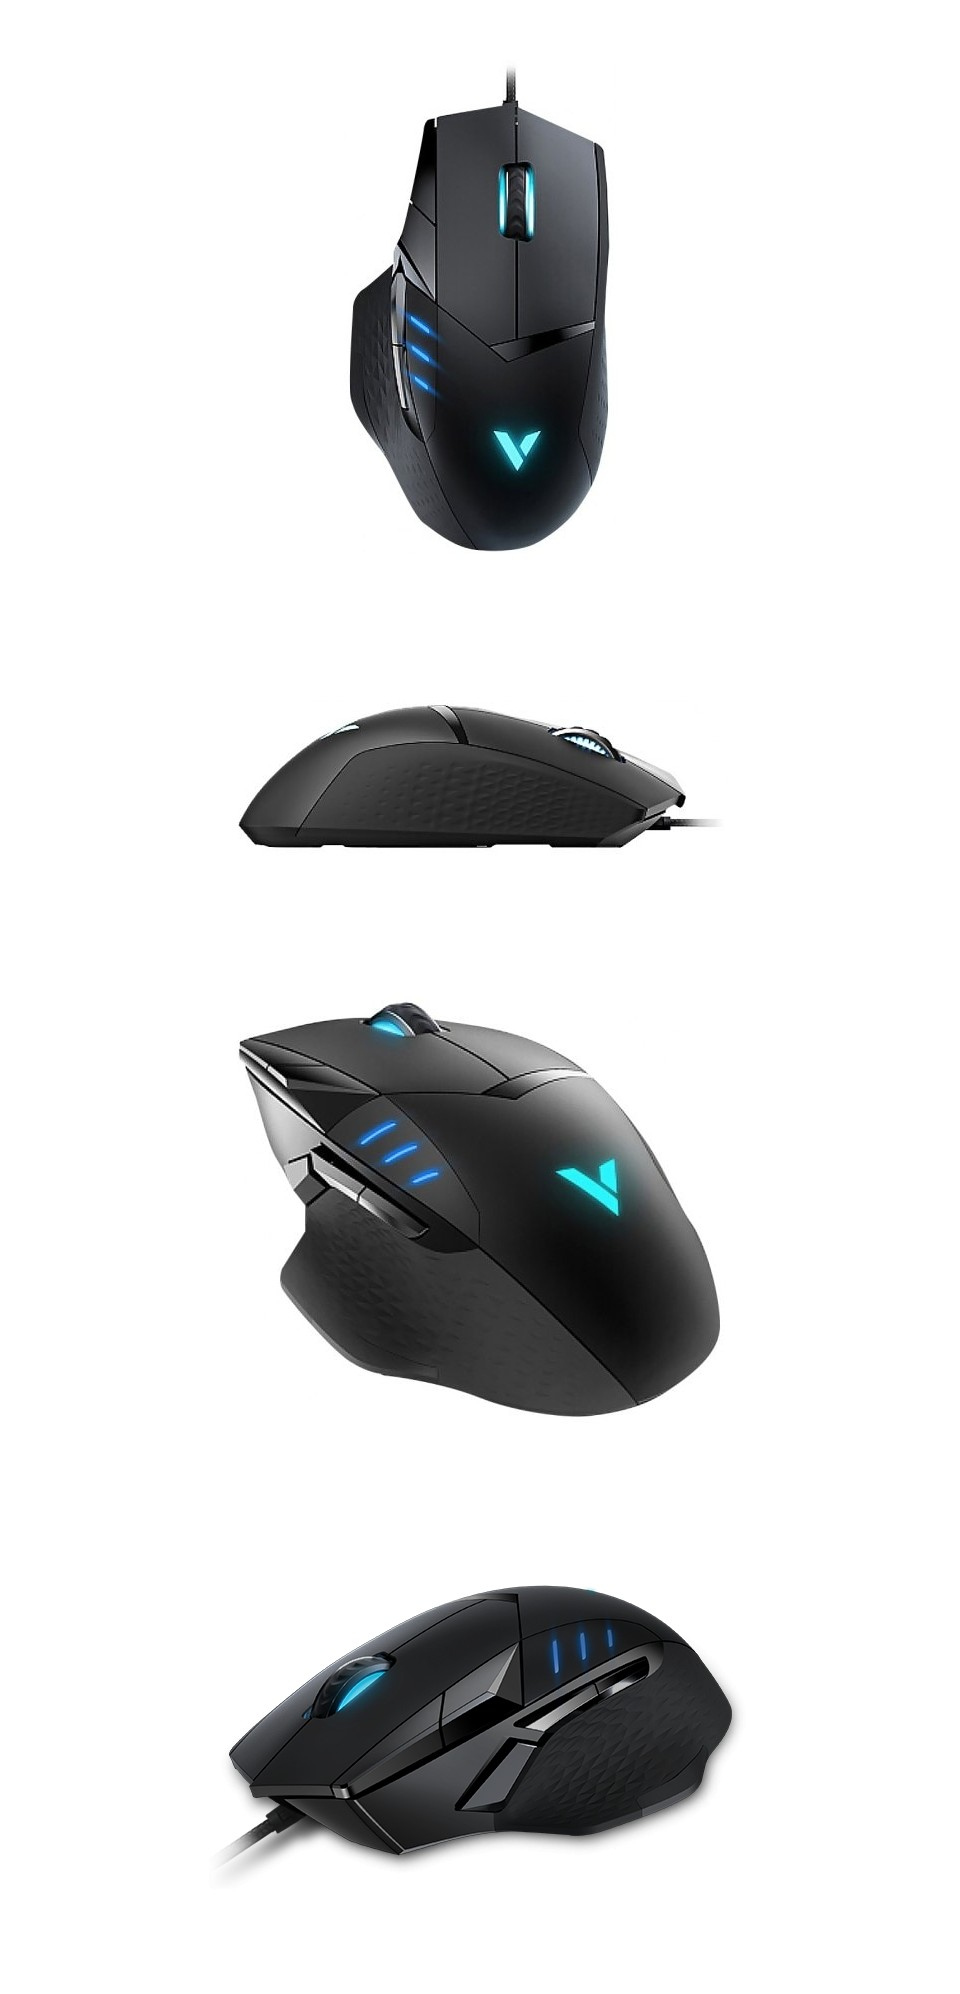 Rapoo VT300 IR RGB Optical Gaming Mouse product